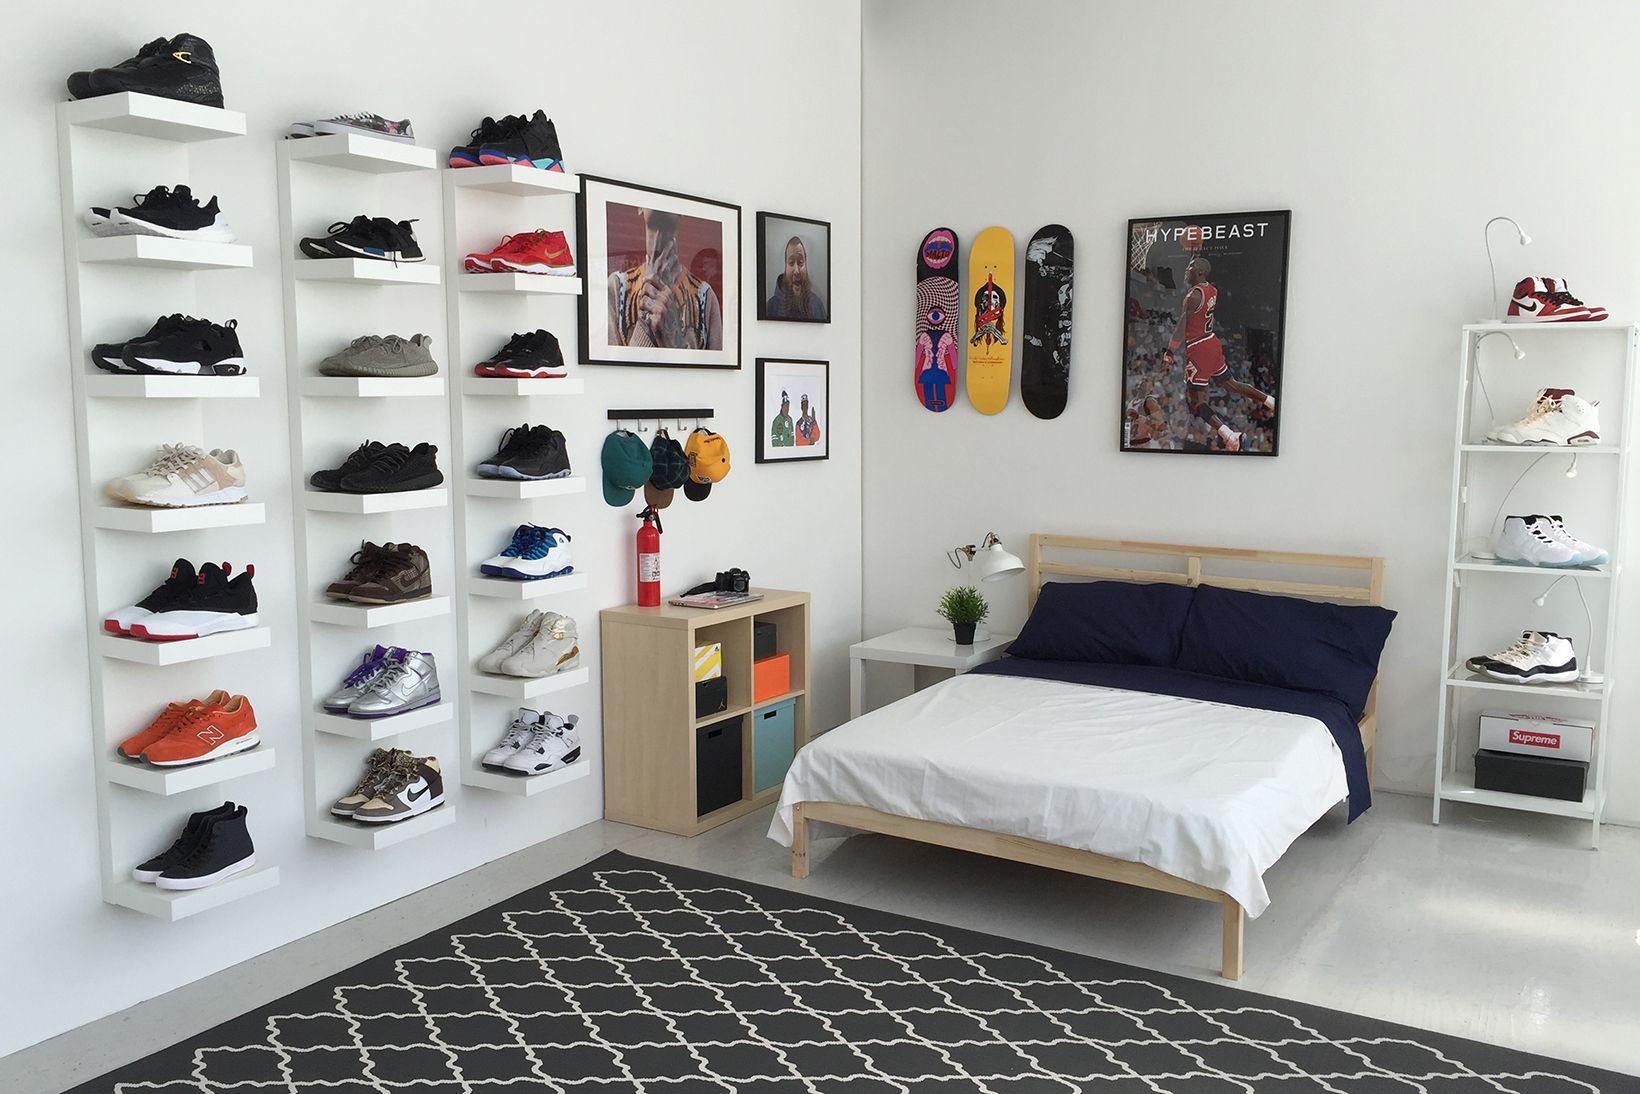 Ikea Schlafzimmer Teenager Ikea And Hypebeast Design The Ideal Sneakerhead Bedroom Zimmer